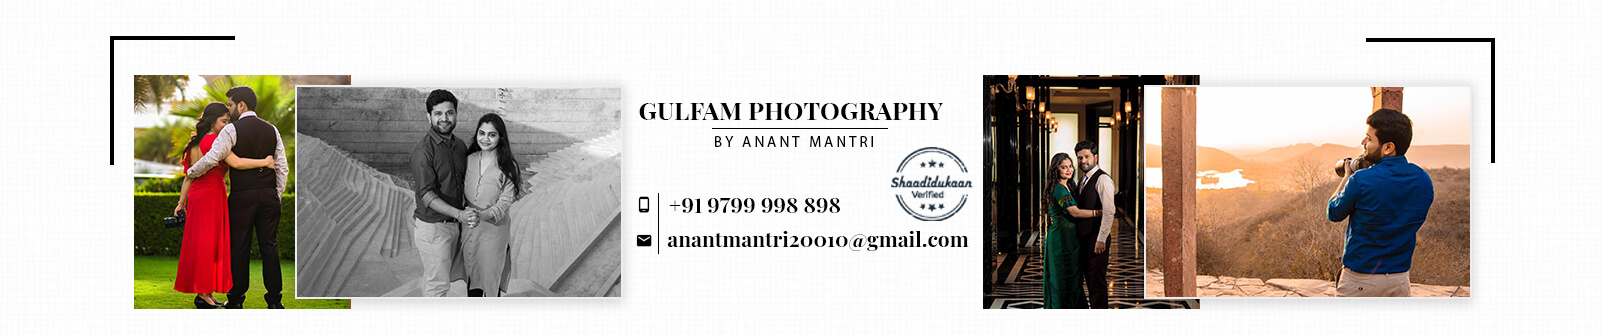 Gulfam Photography by Anant Mantri